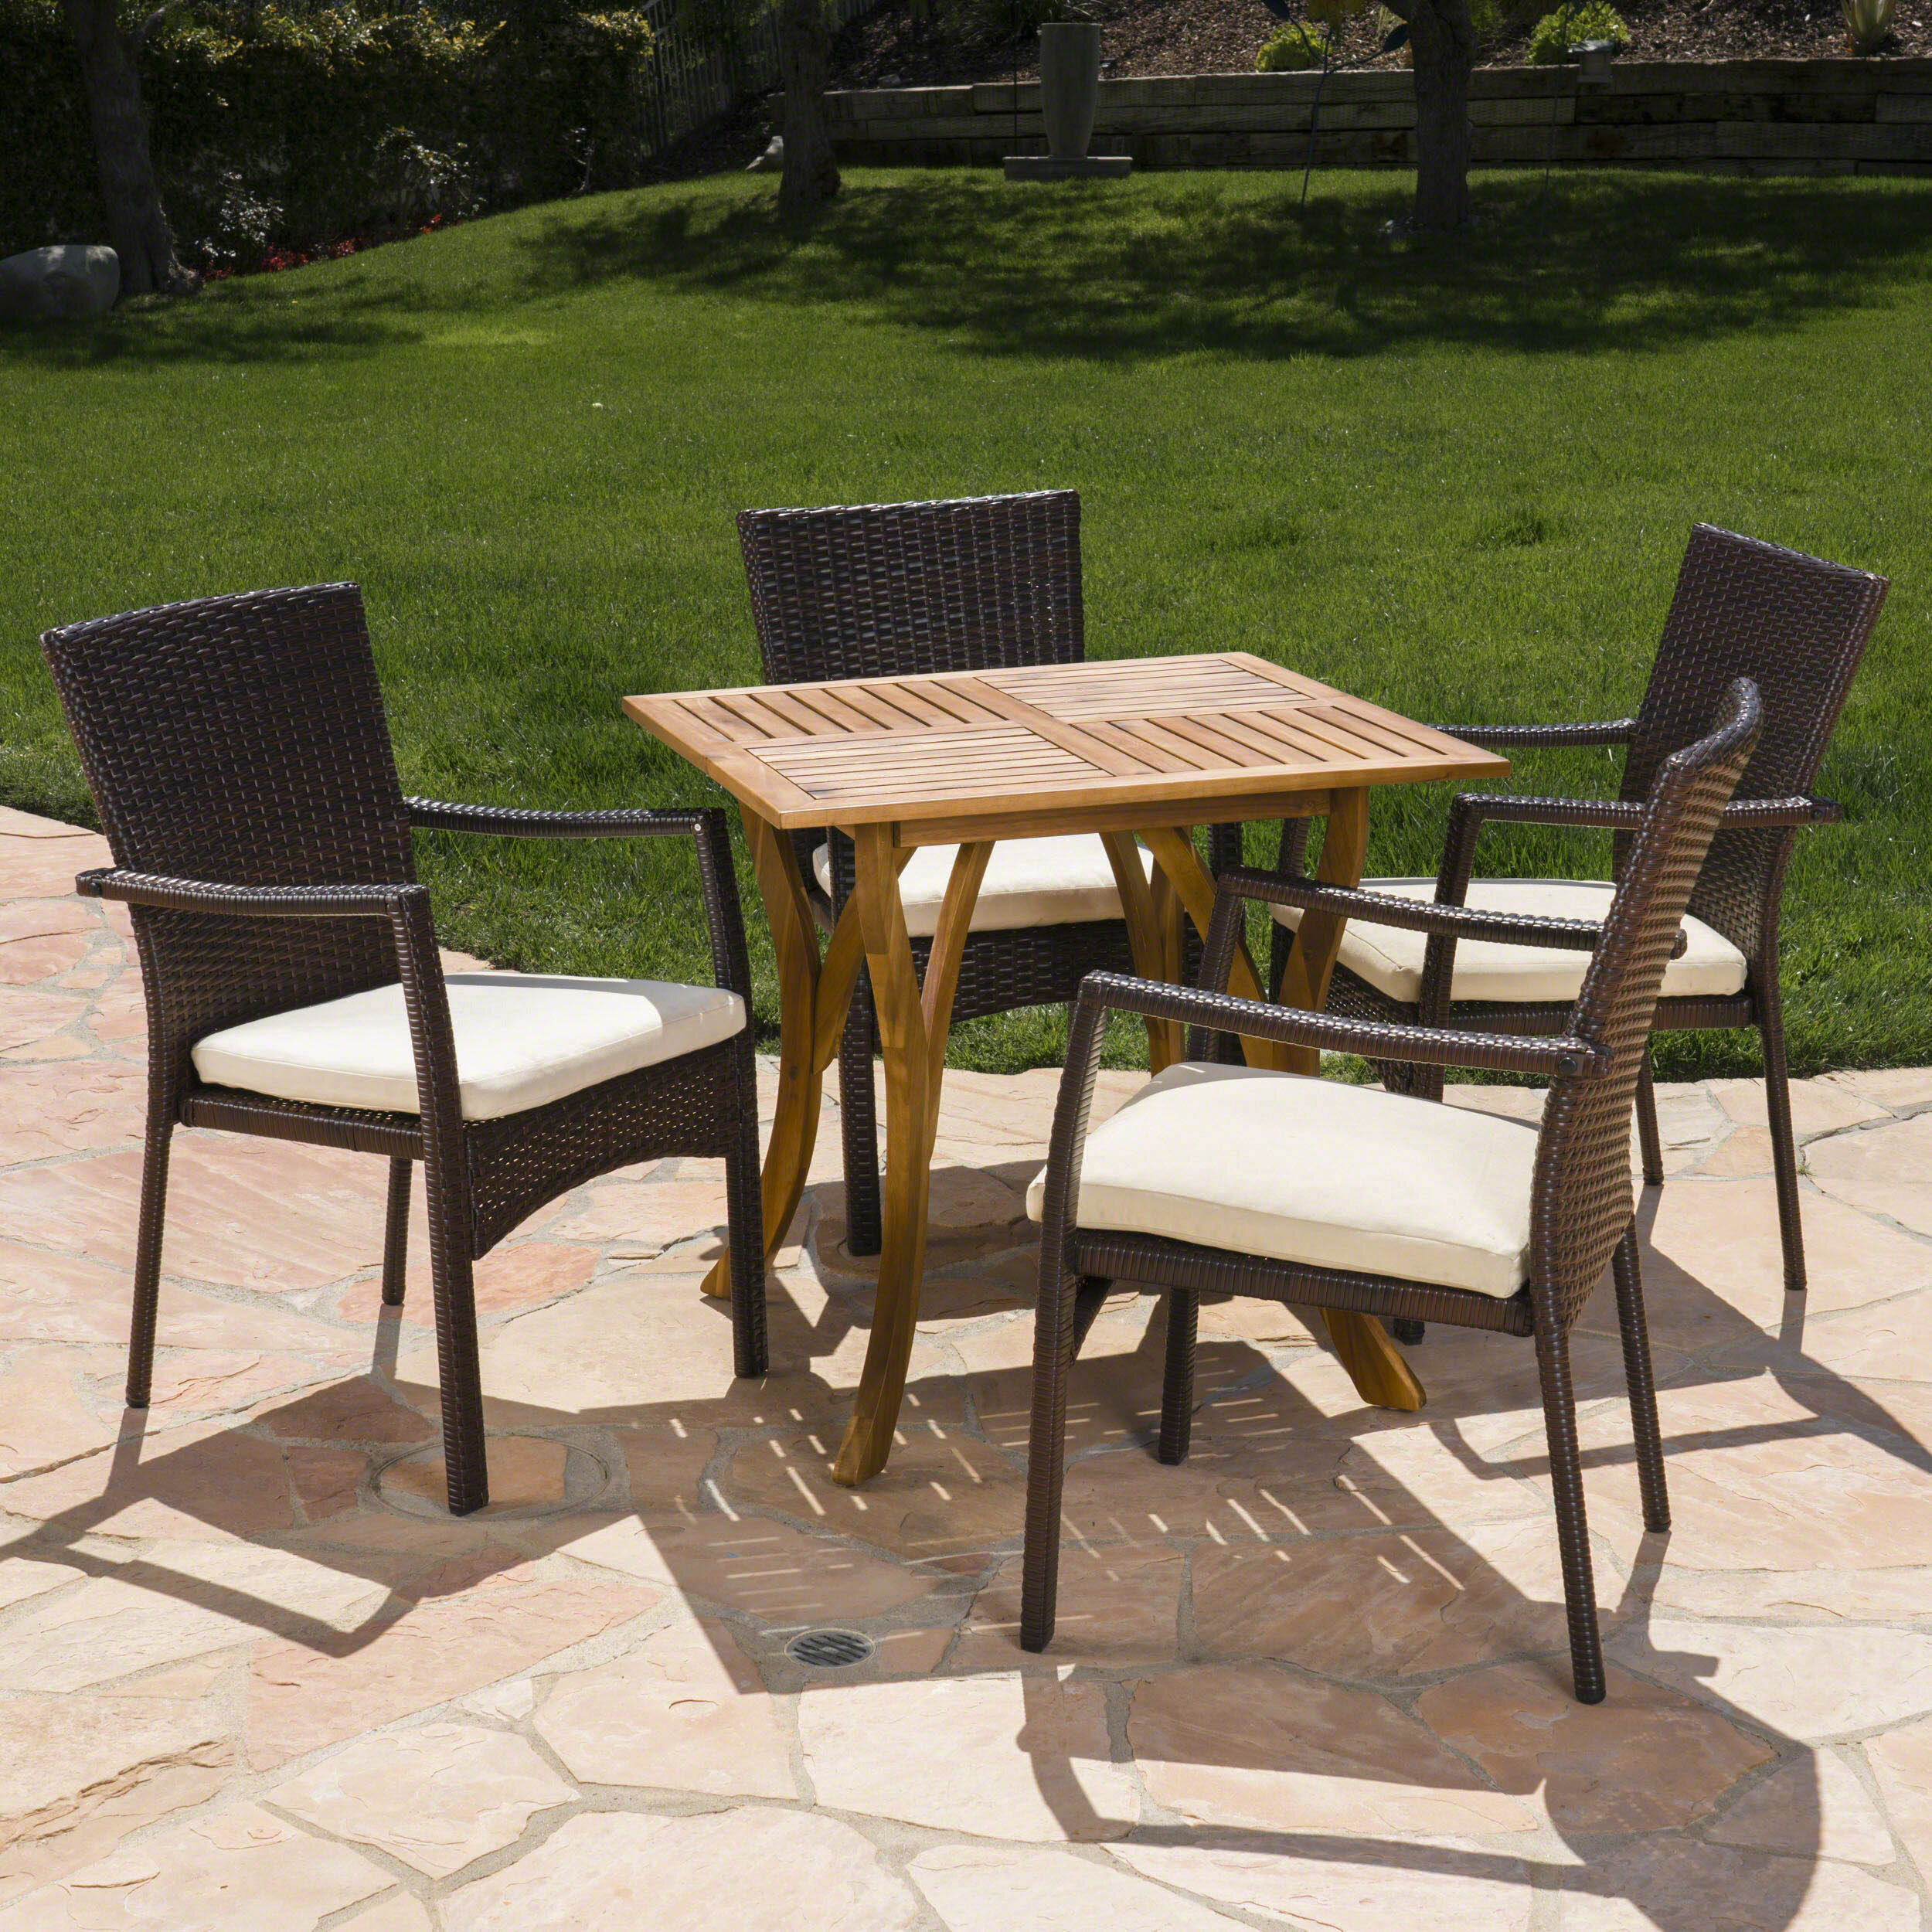 Awe Inspiring Hennings Outdoor Acacia Wood Wicker 5 Piece Dining Set With Cushions Lamtechconsult Wood Chair Design Ideas Lamtechconsultcom